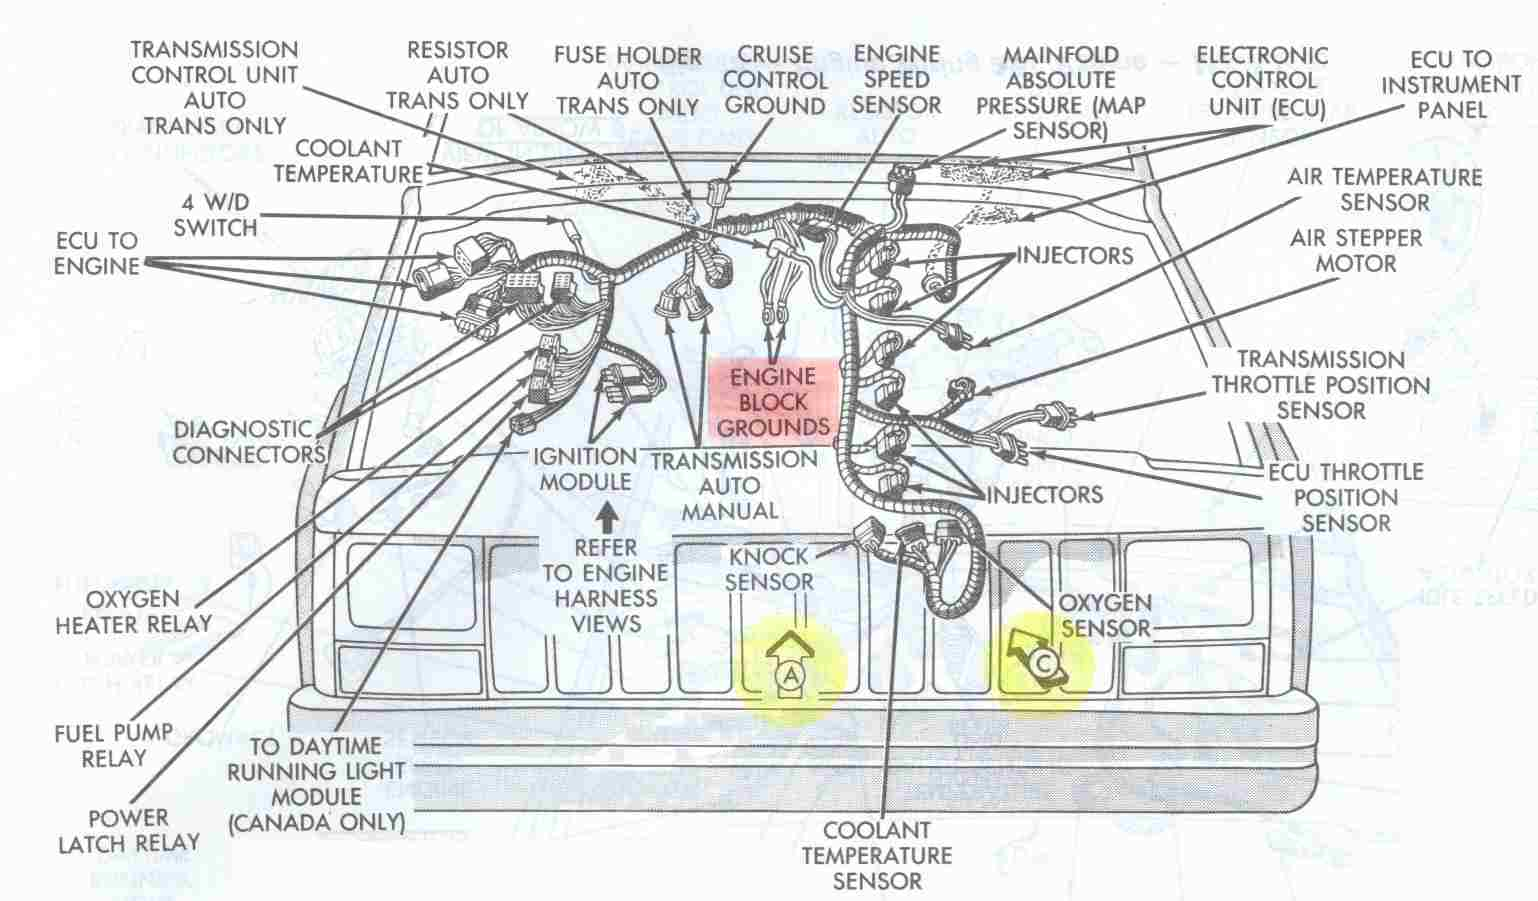 Electrical_Engine_Ground_Points_Overview jeep cherokee electrical diagnosing erratic behavior of engine 2000 jeep xj wire diagram at webbmarketing.co